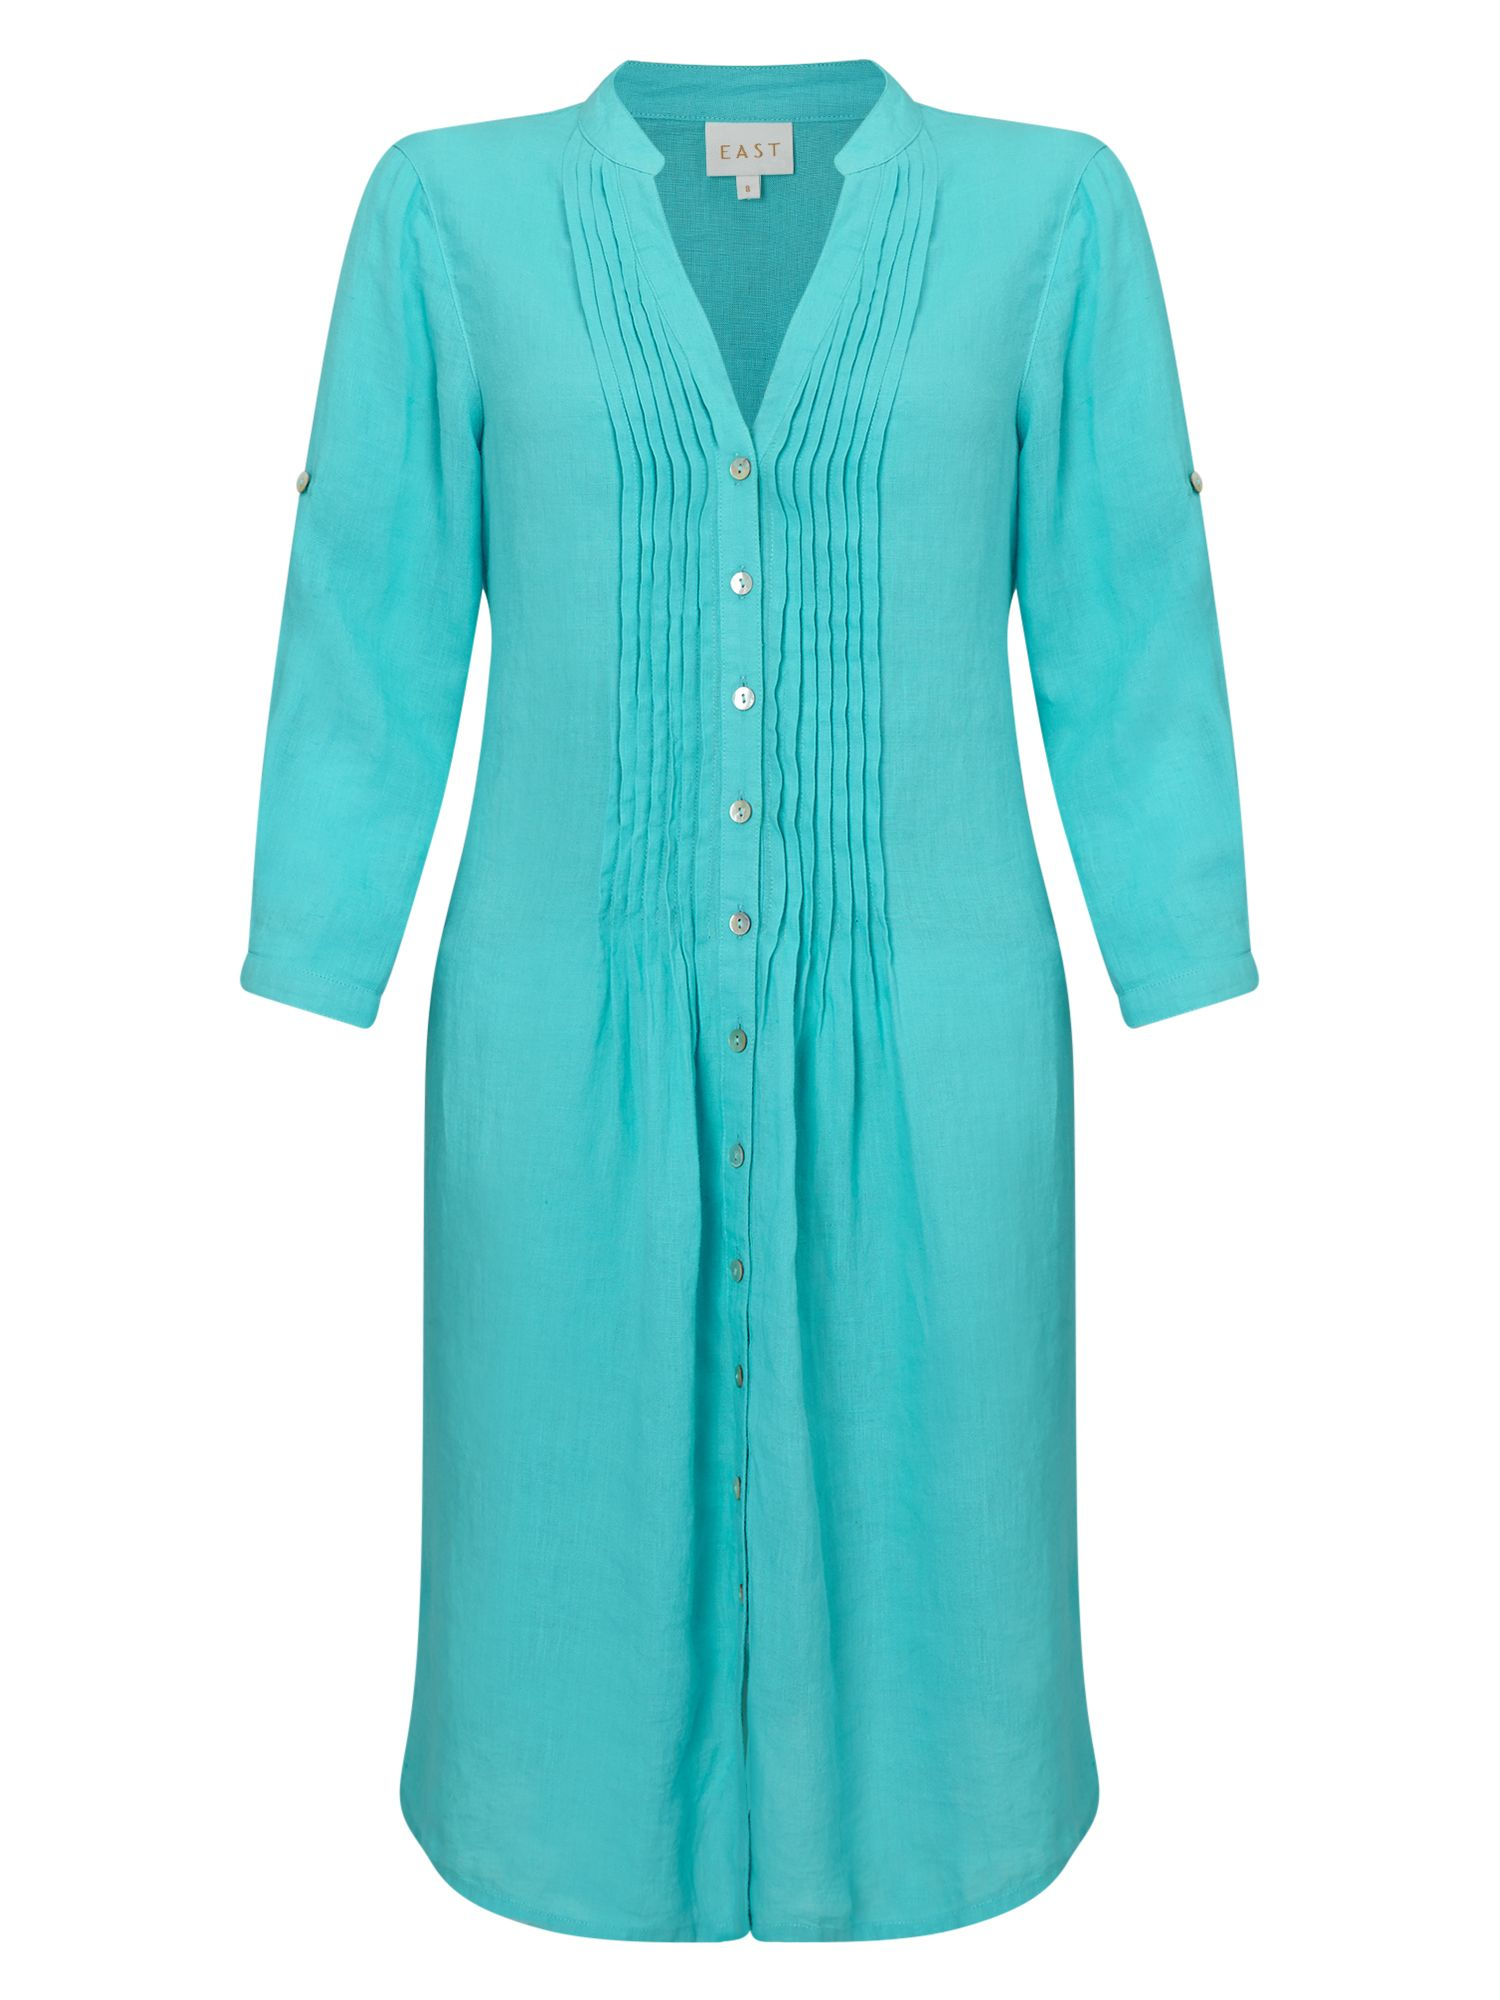 East Linen Pintuck Dress, Blue